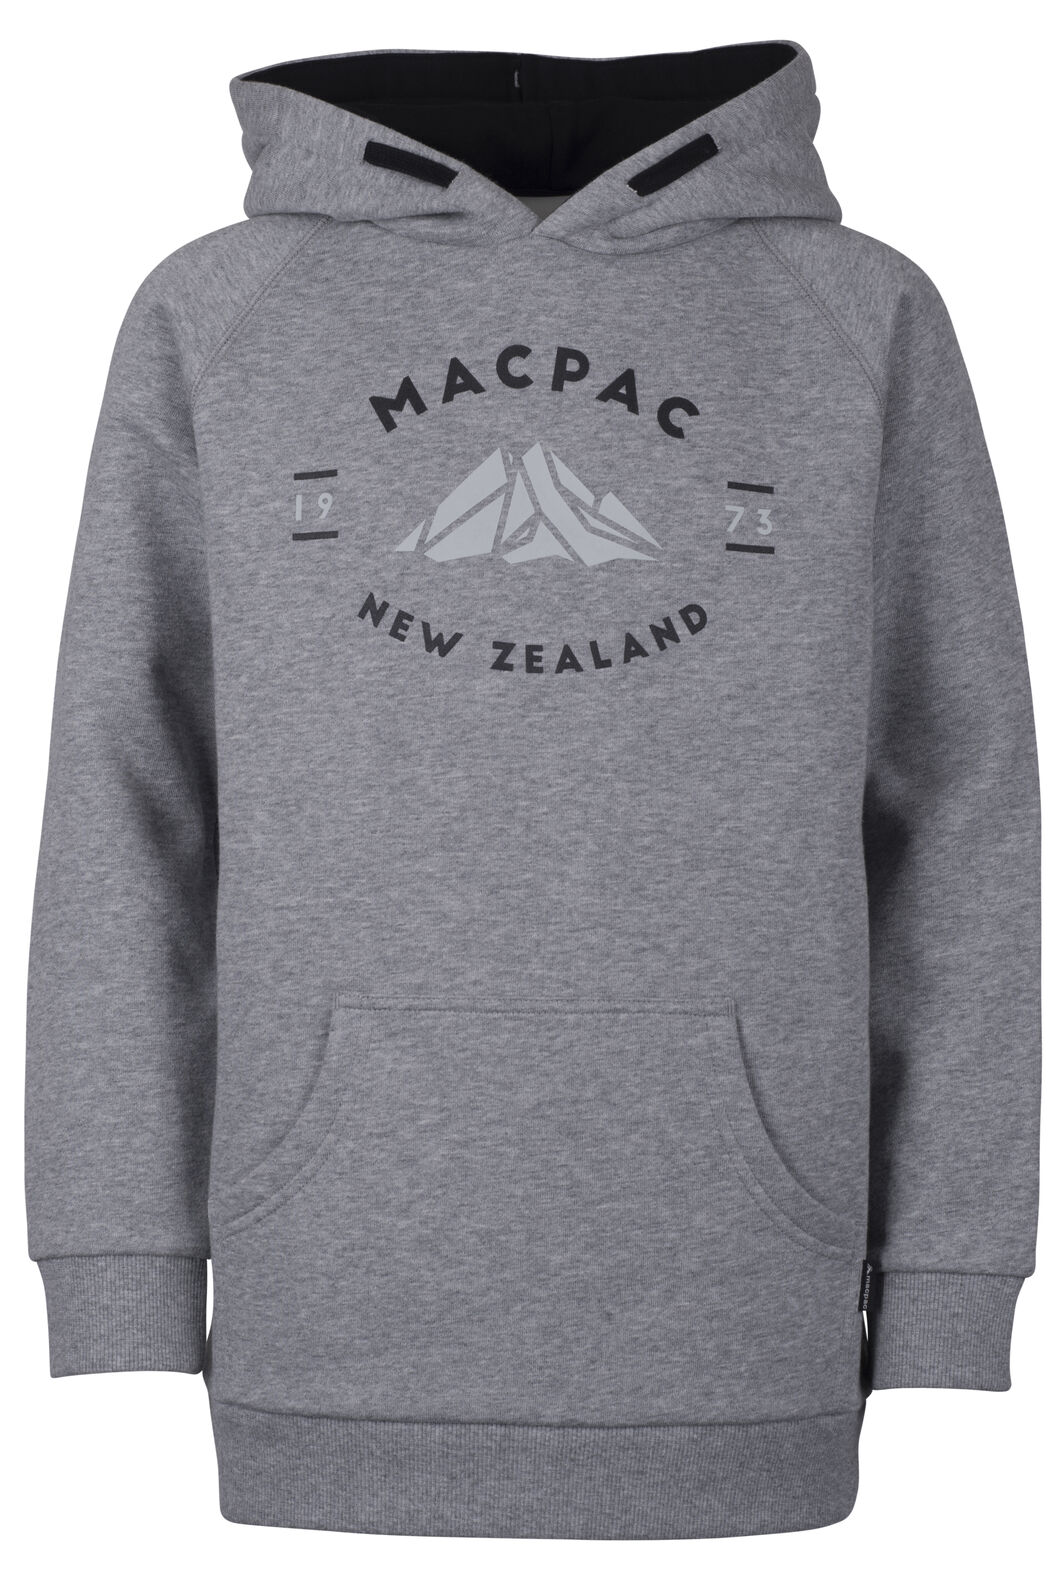 Macpac Organic Mountain Hoody - Kids', Grey Marle, hi-res